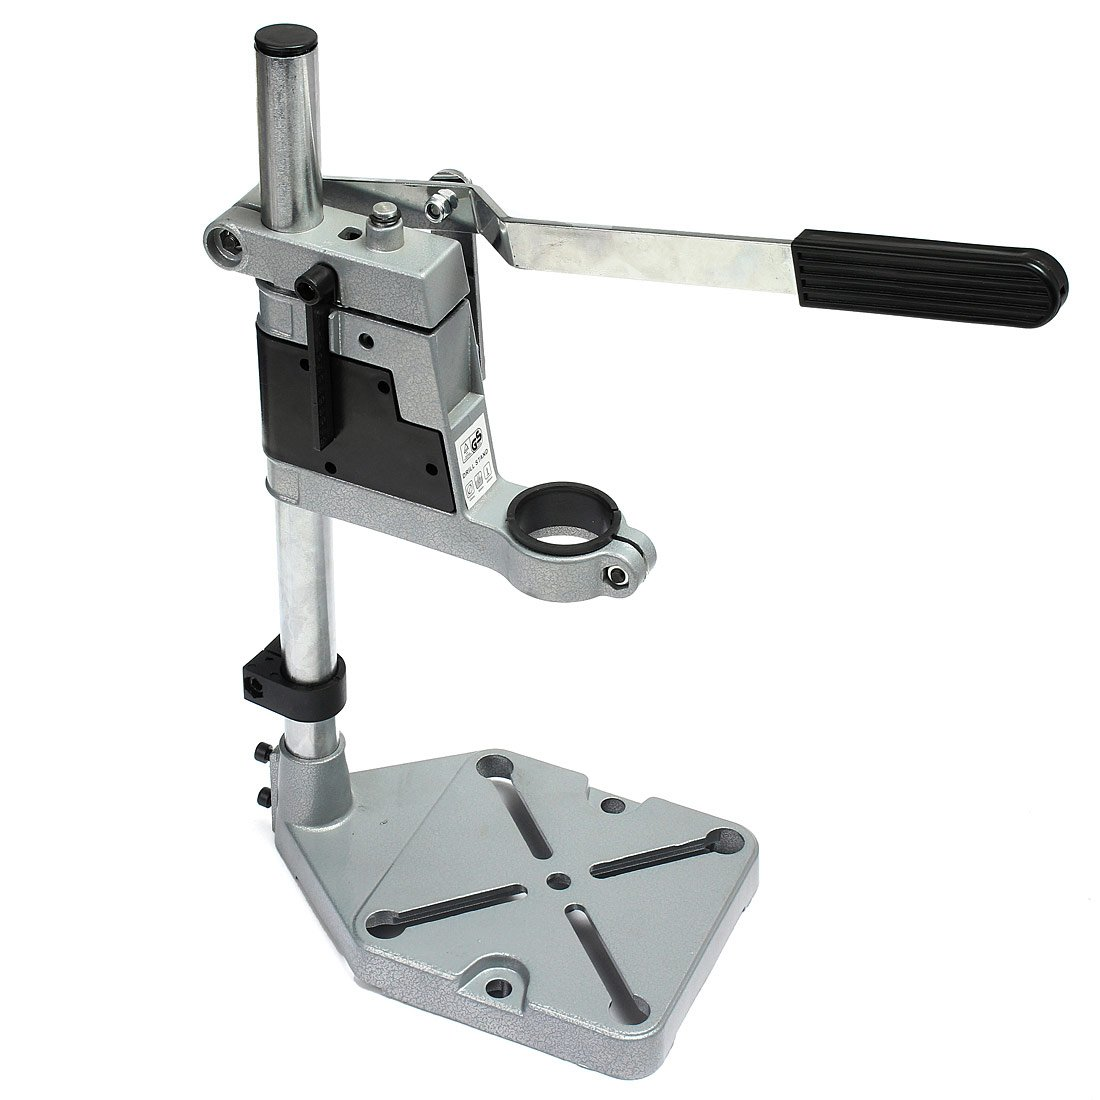 Bench Drill Press Stand Workbench Repair Tool Clamp for ...